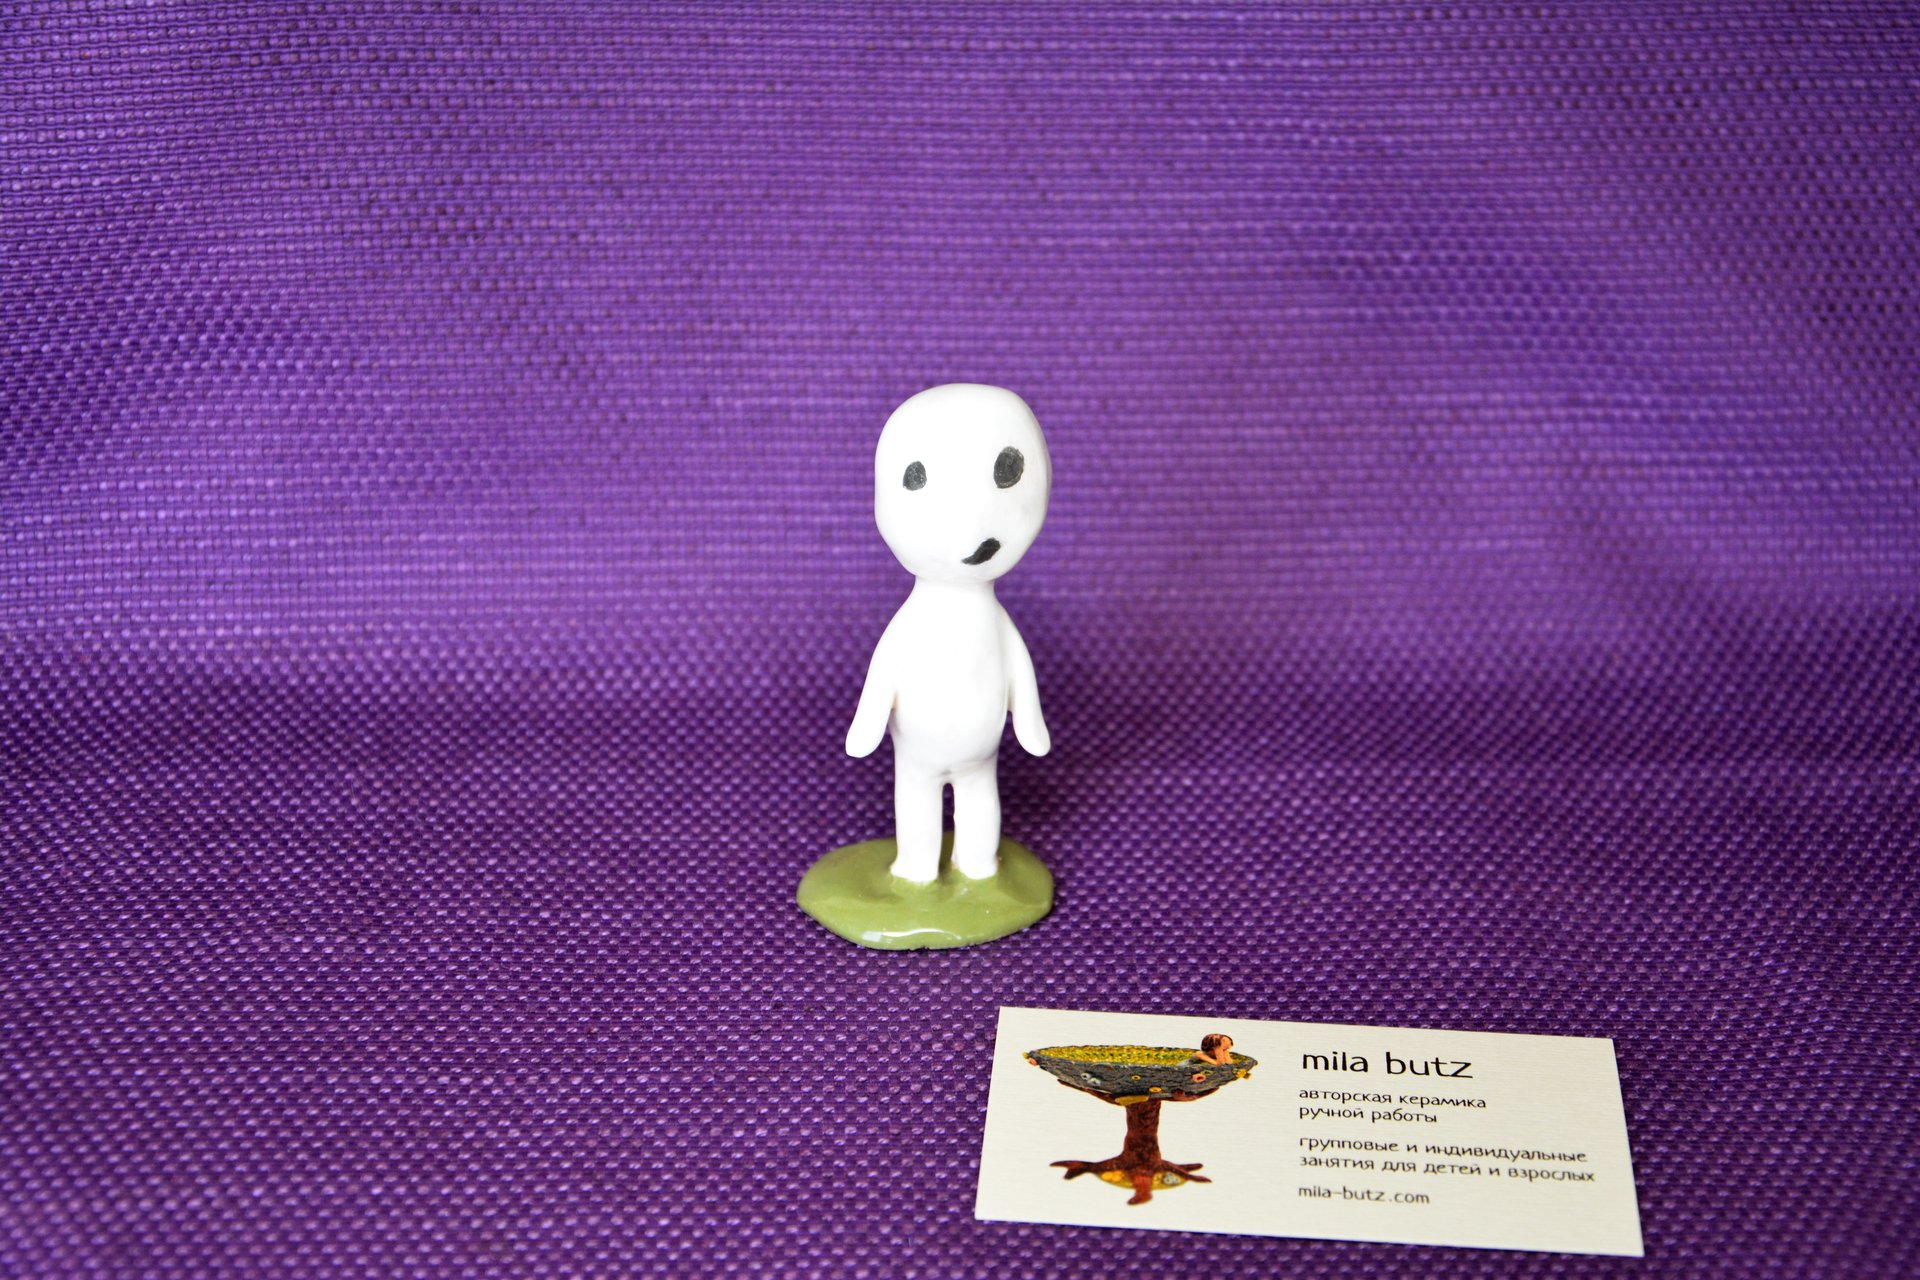 A figurine of the whispering Kodama tree spirit, height - 8.5 cm, photo 3 of 4.